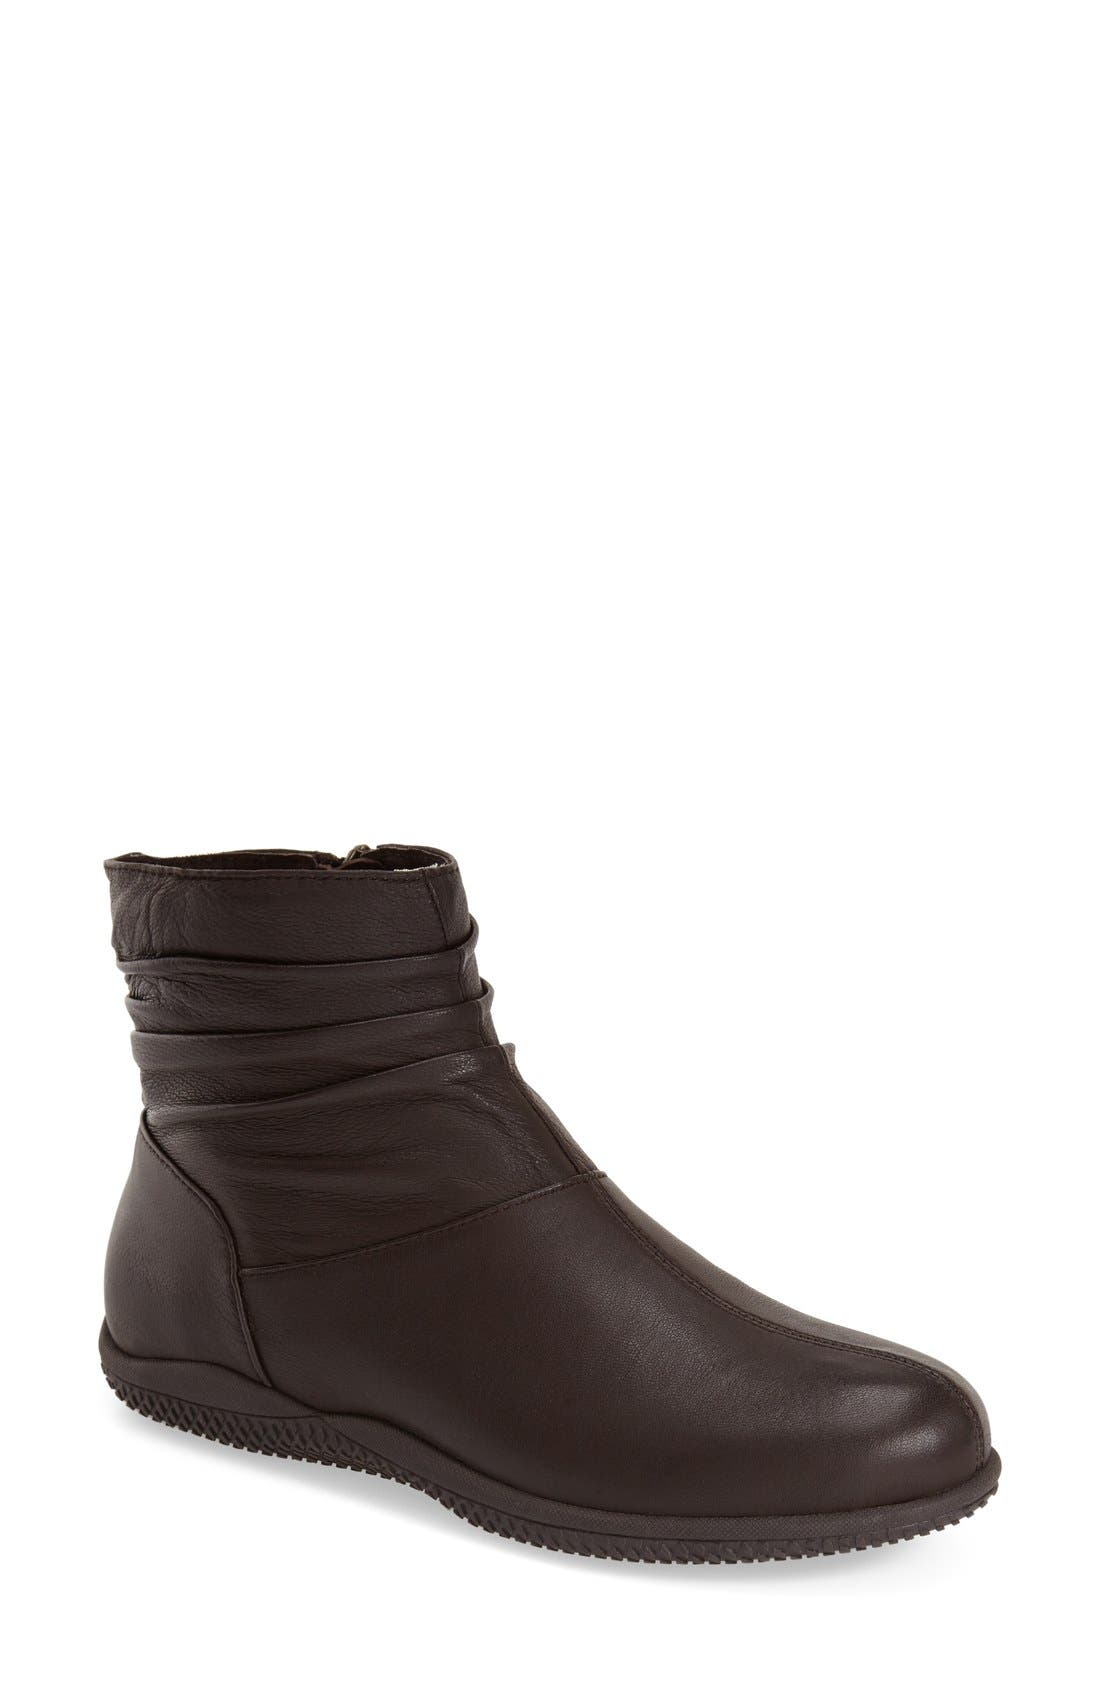 'Hanover' Leather Boot,                             Main thumbnail 4, color,